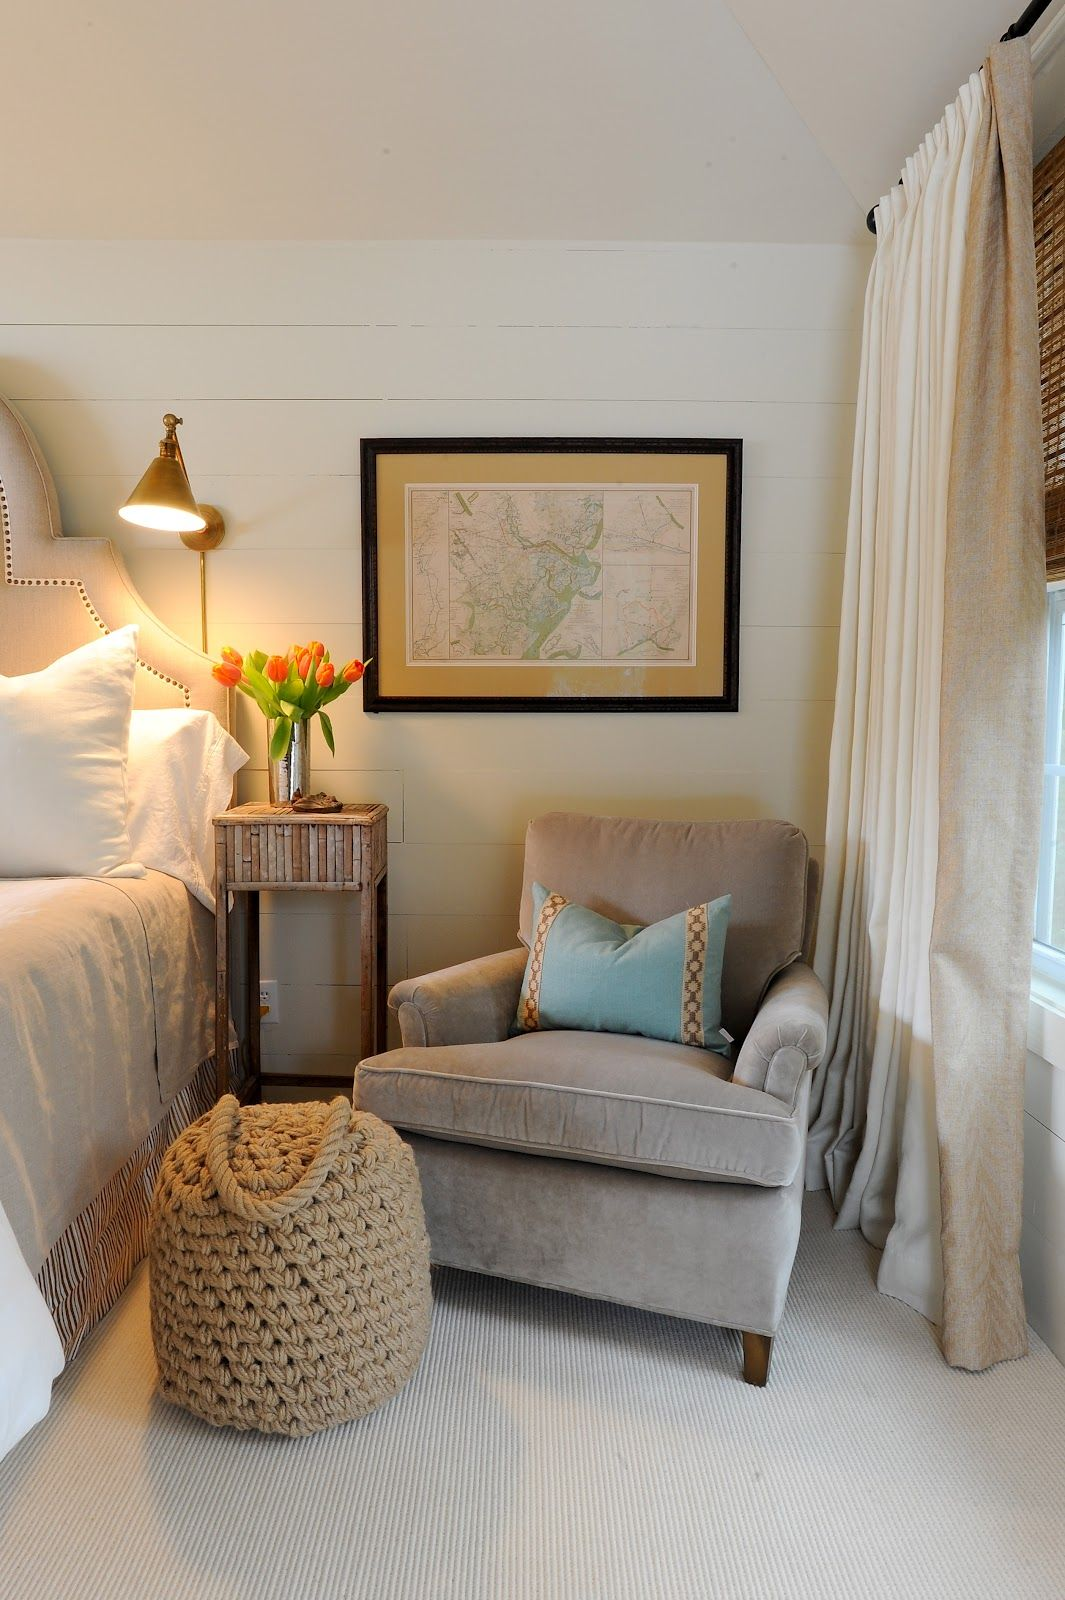 A Cozy Club Chair Adds Warmth To Master Bedroom On One Side And Small Table Or Rocking For Mom